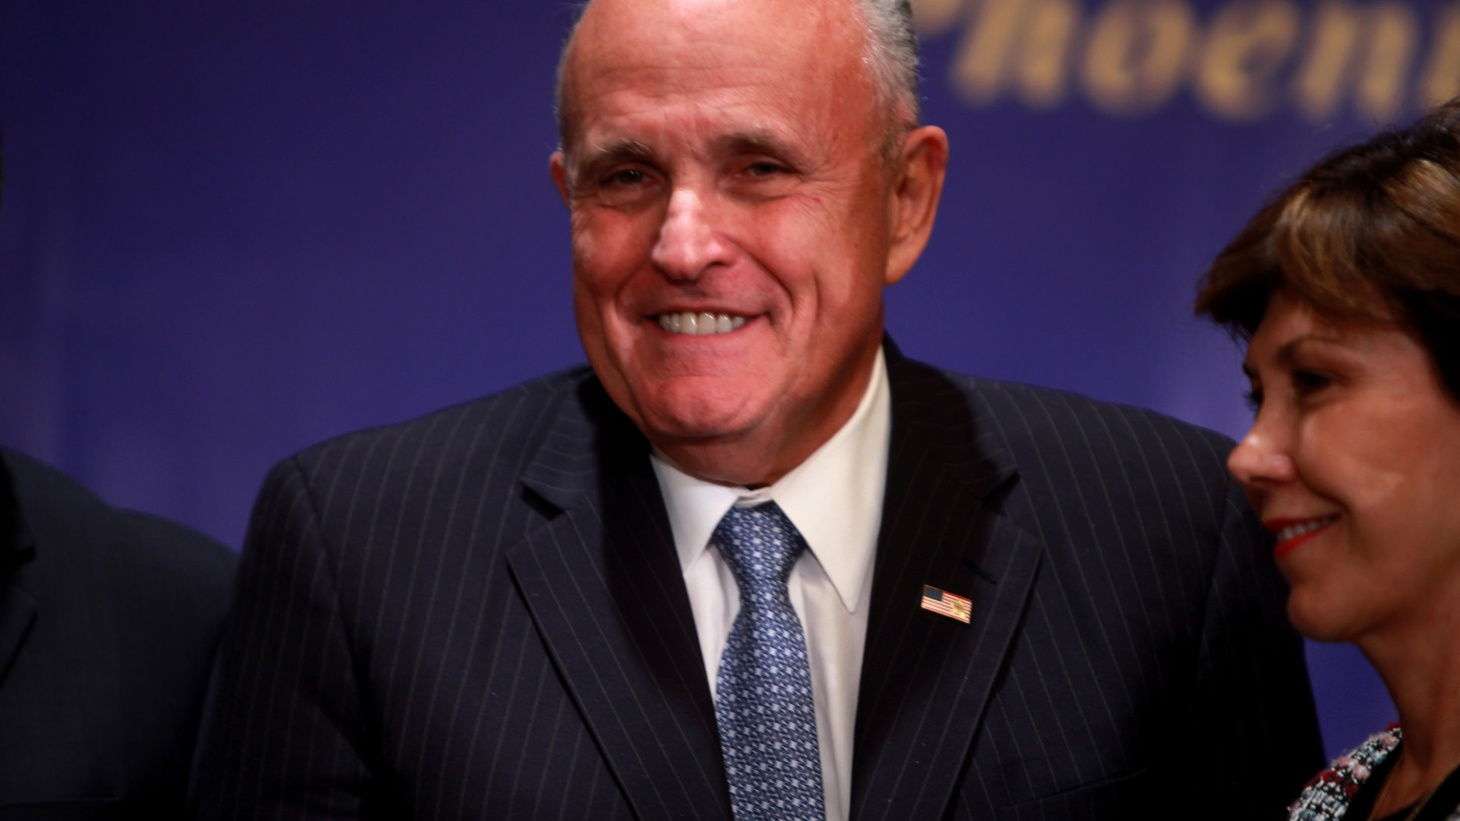 There was just too much to talk about: Rudy Giuliani admits to Sean Hannity that President Donald Trump reimbursed his attorney for the $130,000 payment to porn star Stormy Daniels to keep quiet.